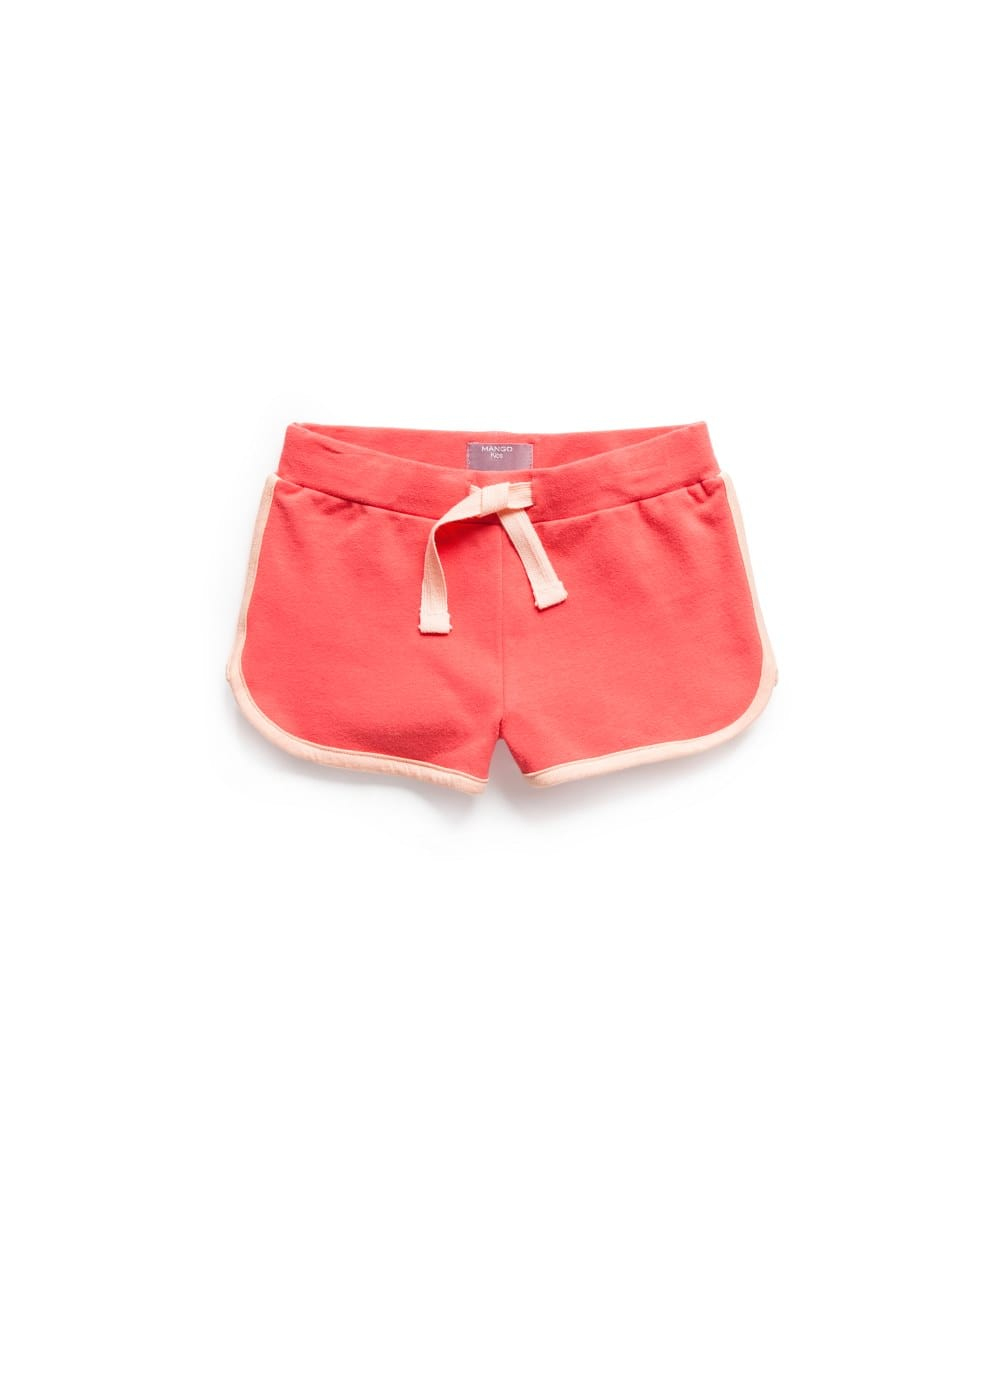 Shorts jòguing rivet